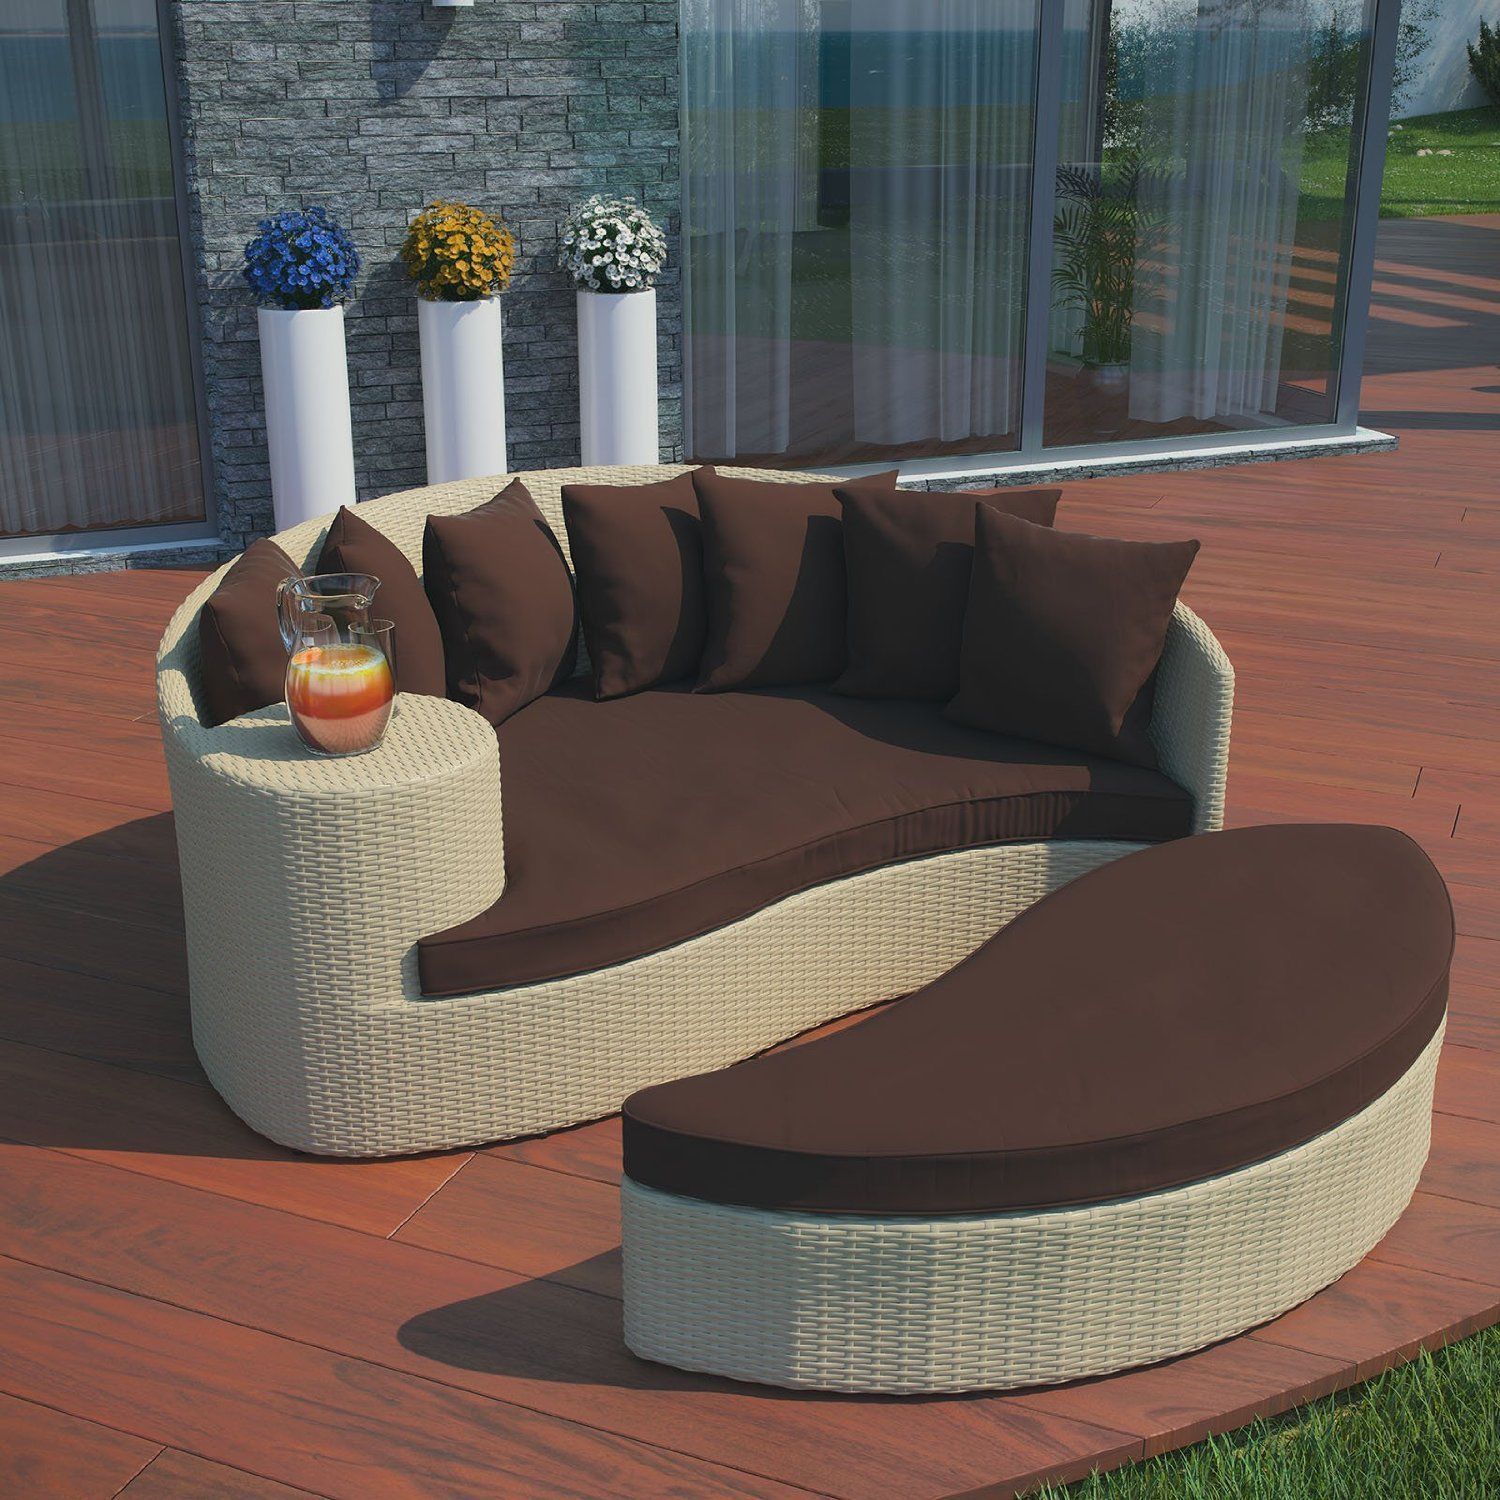 Modern LexMod Taiji Outdoor Wicker Patio Daybed W/ Ottoman Tan w/ Brown  Cushions - $1,954.75